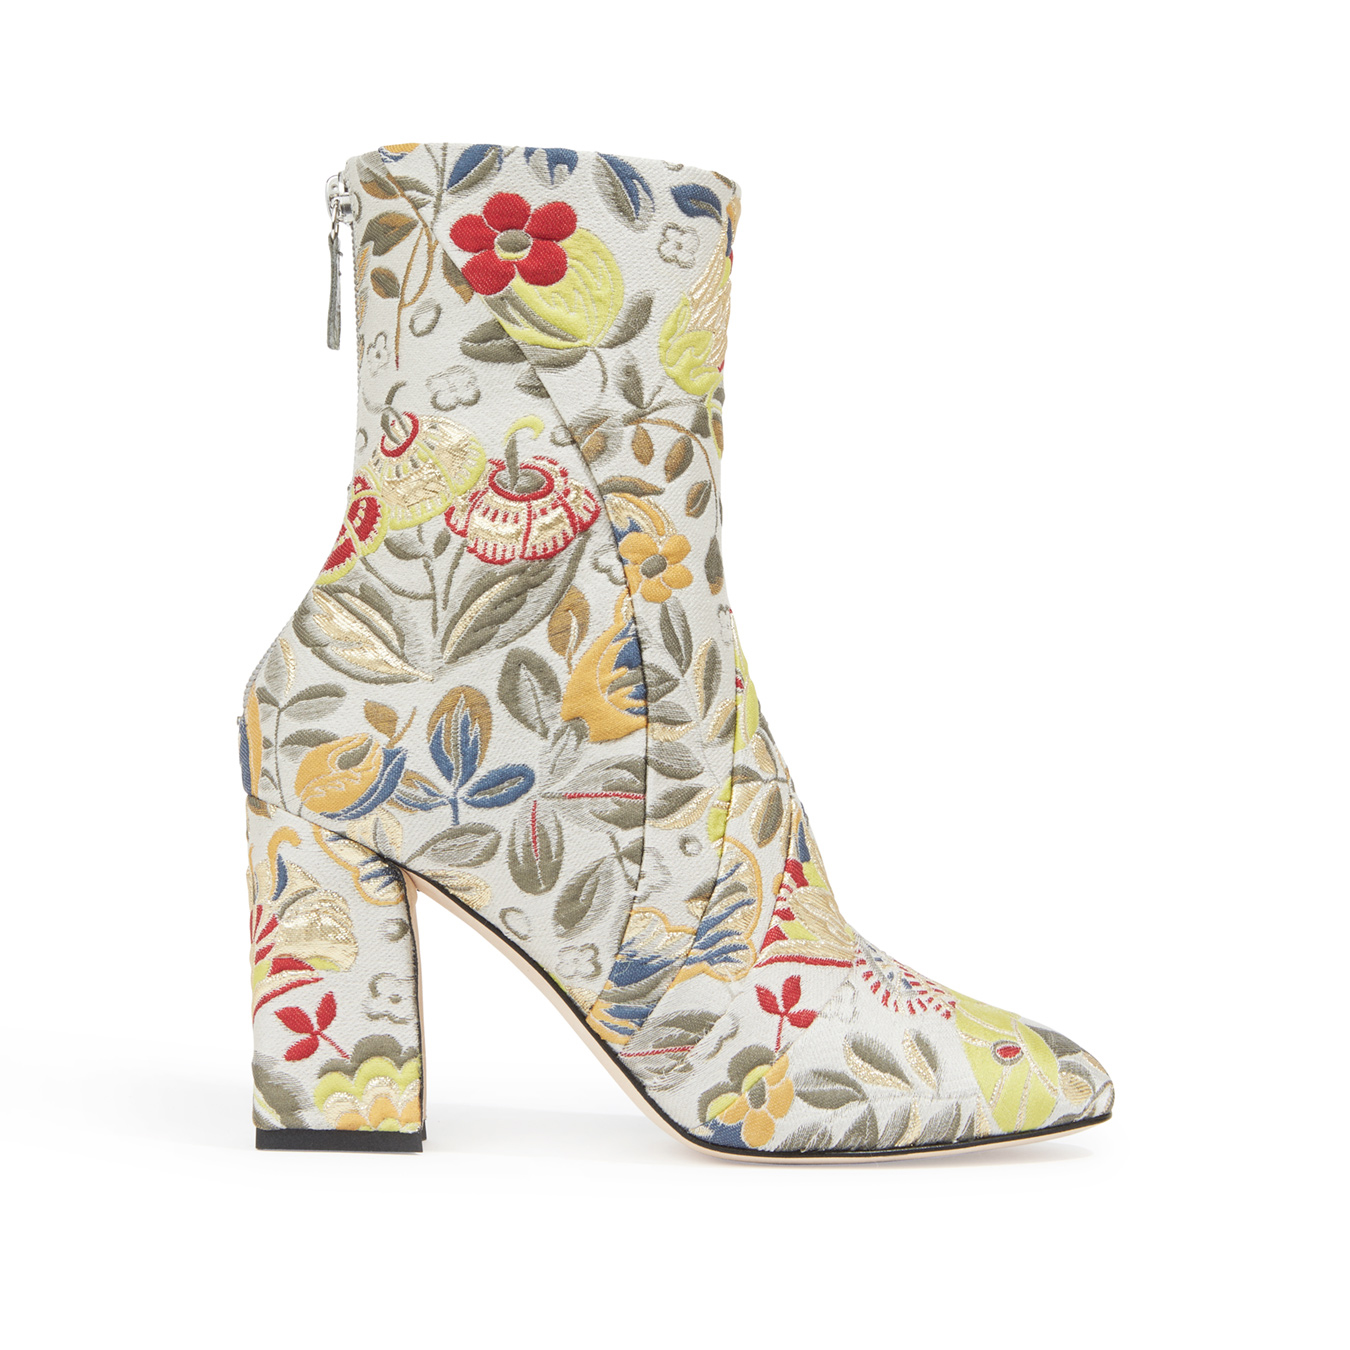 <p>Zac Posen Embroidered Boots</p>